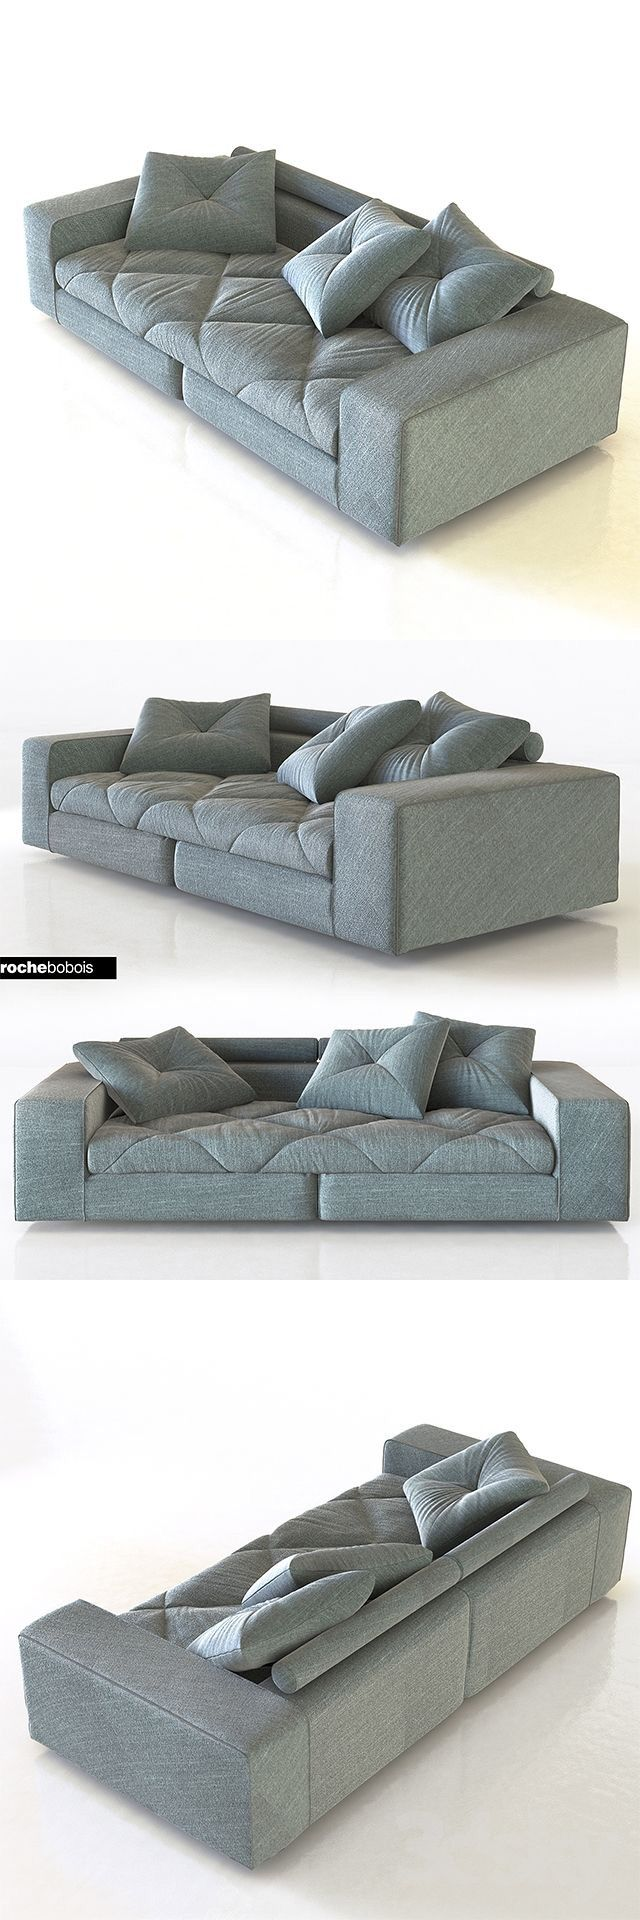 Pin By Joey Davino On Manualidades Sofa Bed With Chaise Comfy Sofa Bed Sofa Bed